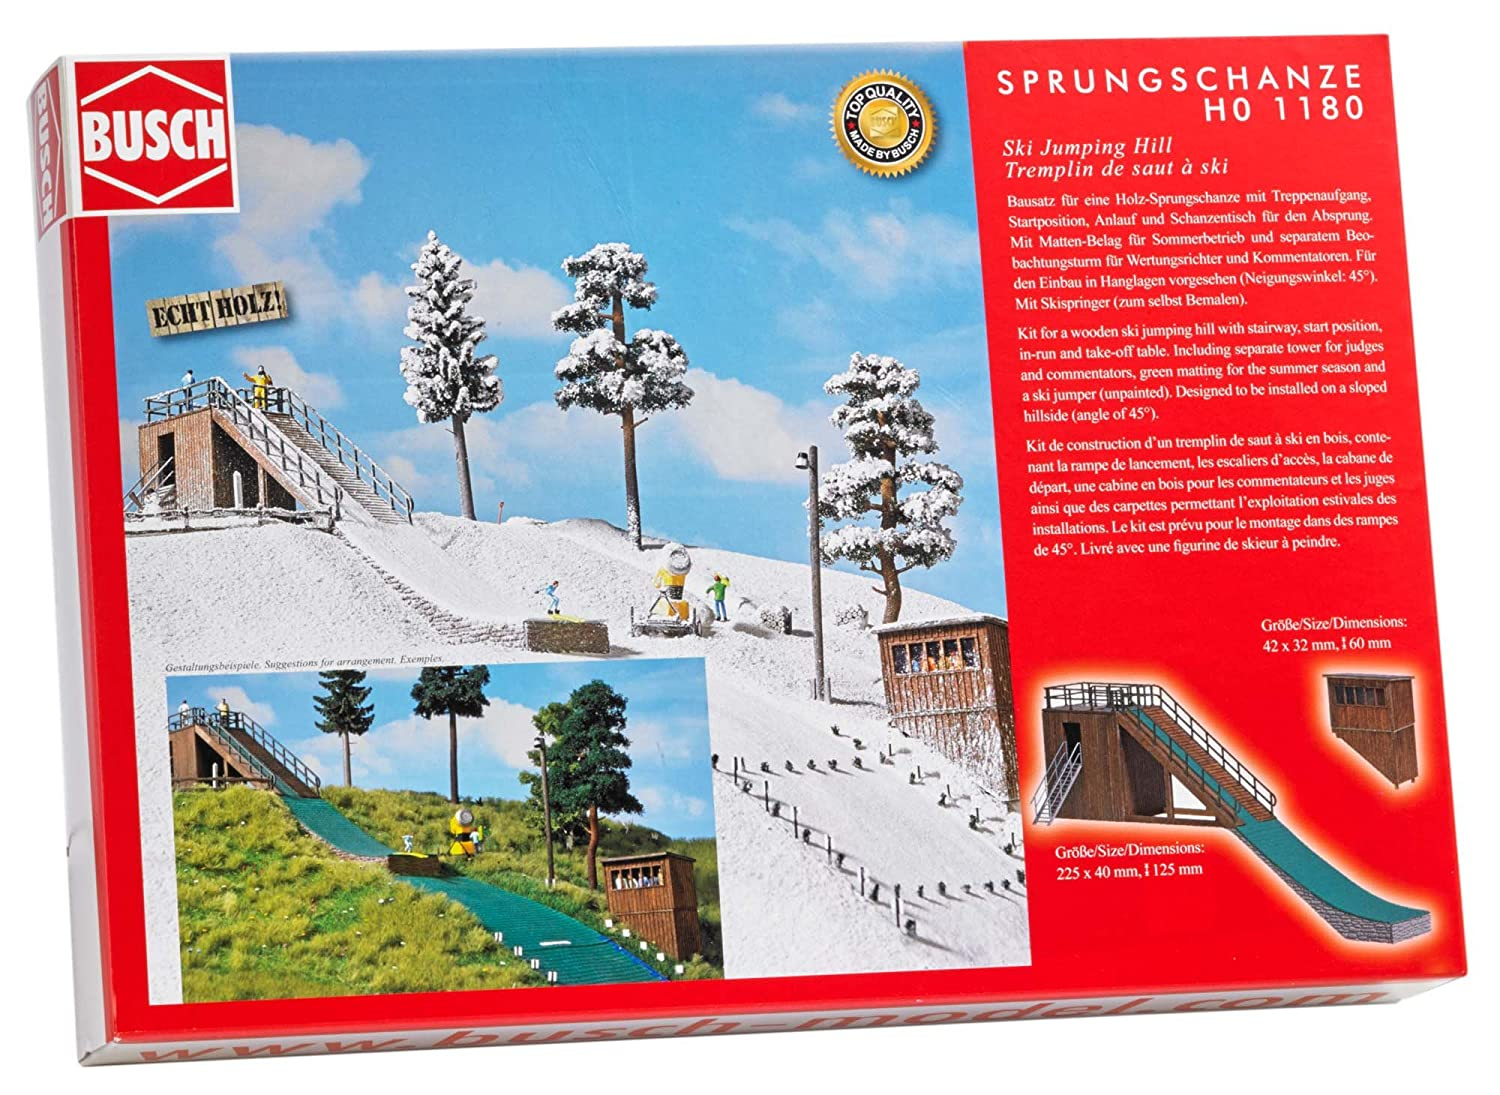 Le Treppenaufgang amazon com busch 1180 ski jumping hill ho scale scenery kit toys